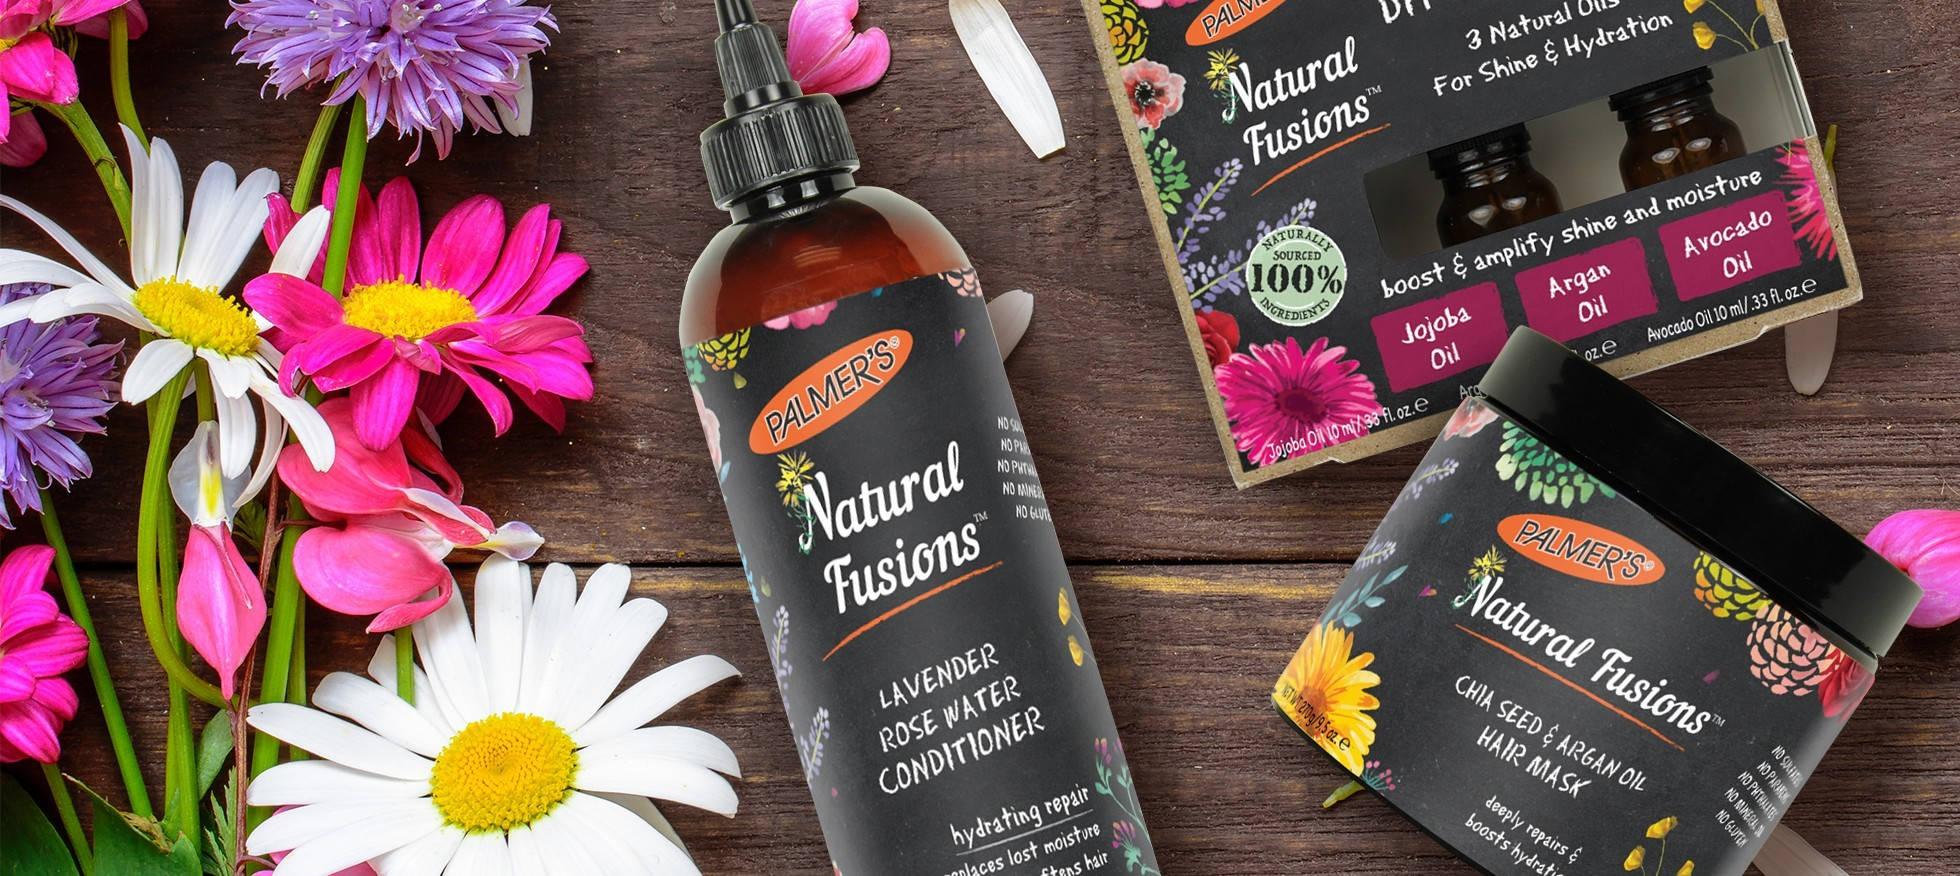 Natural Fusions Skin Care Products